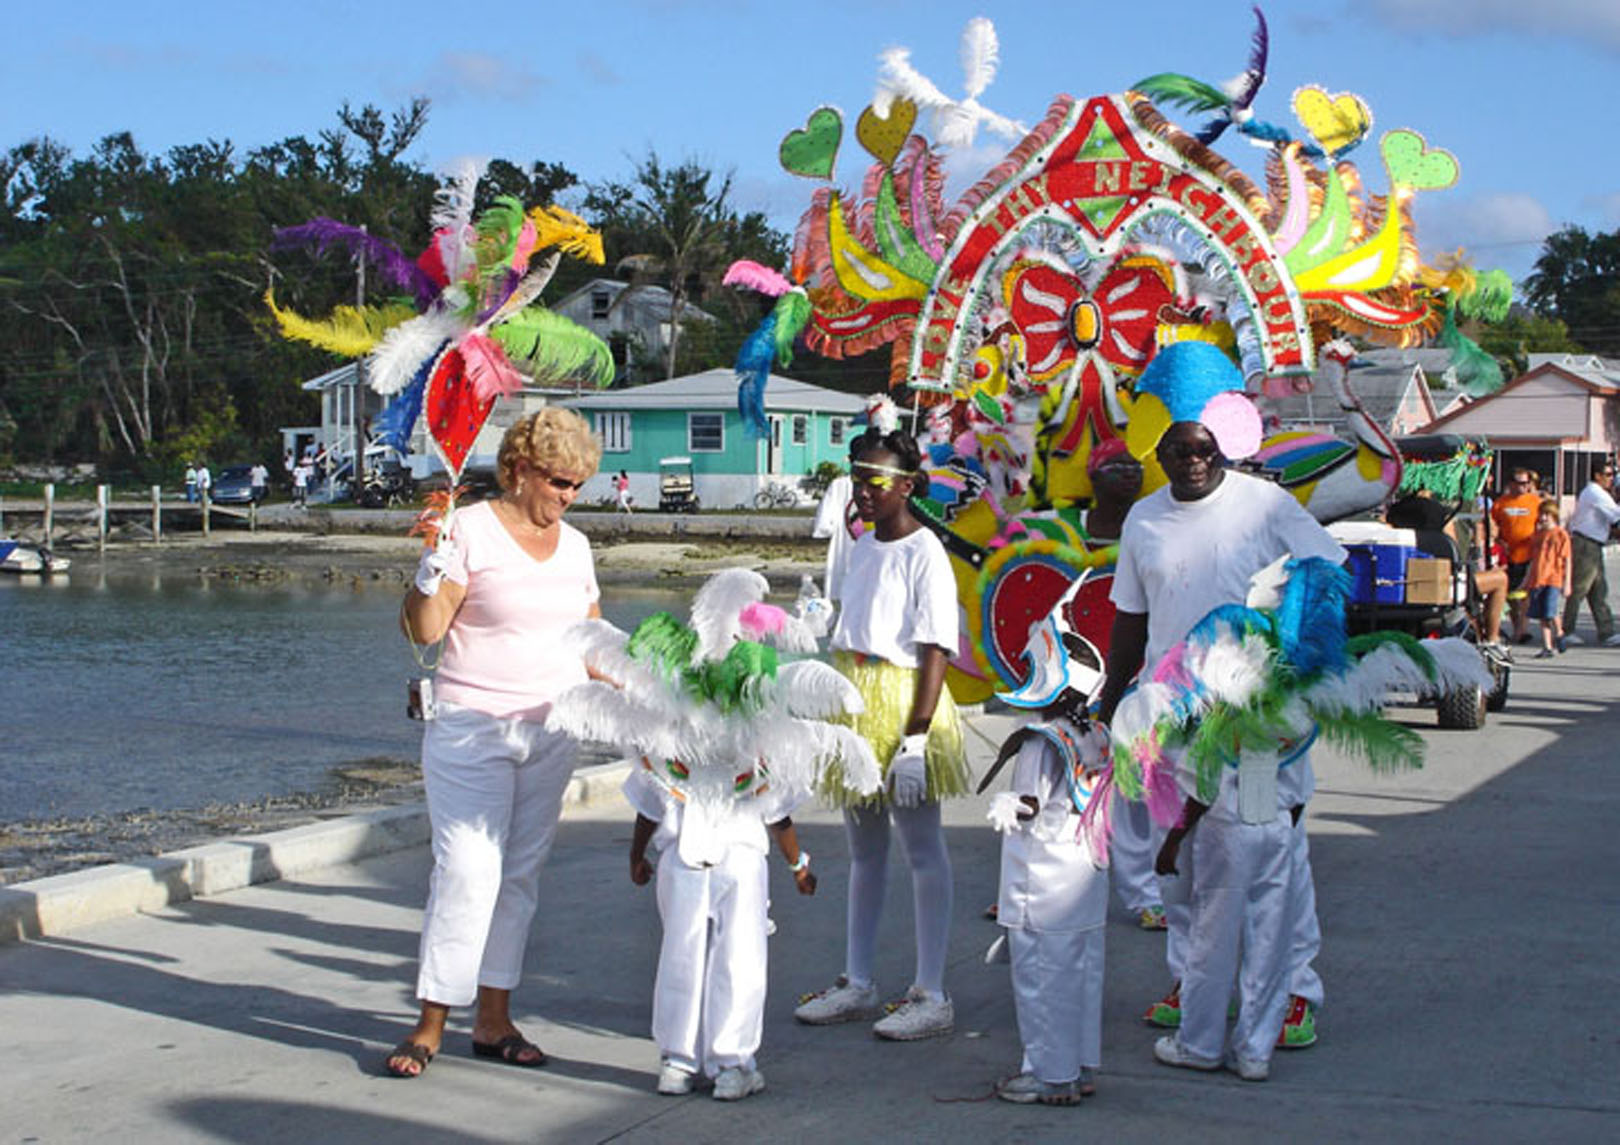 bahamas, abaco, green turtle cay, new year's, junkanoo